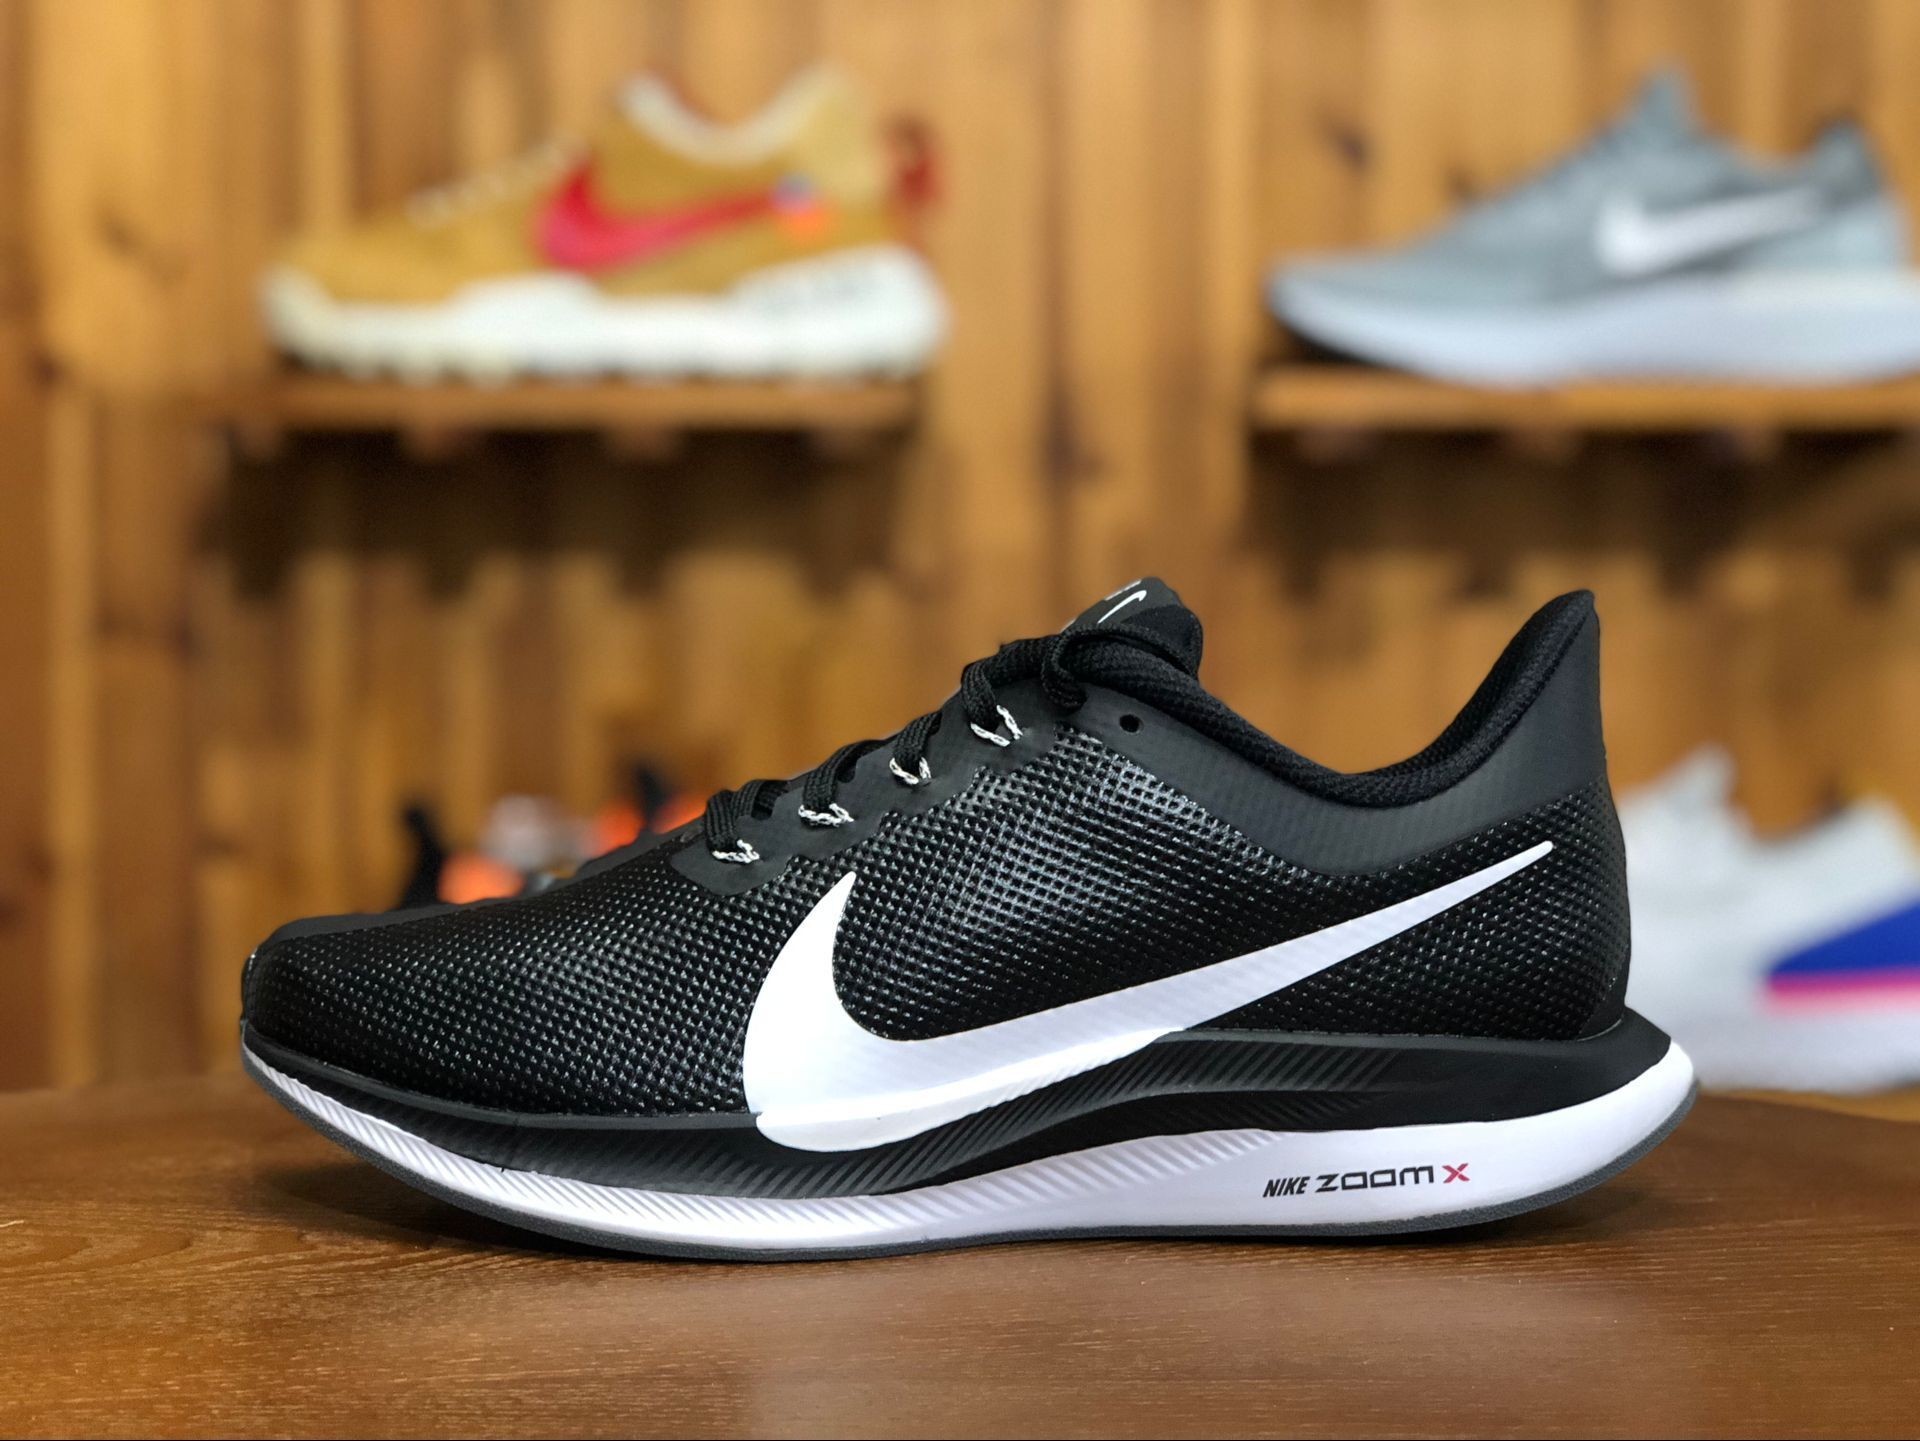 fd4f837a5ed5 Nike Air Zoom Pegasus 35 Turbo Leather Black White Shoe Free Shipping